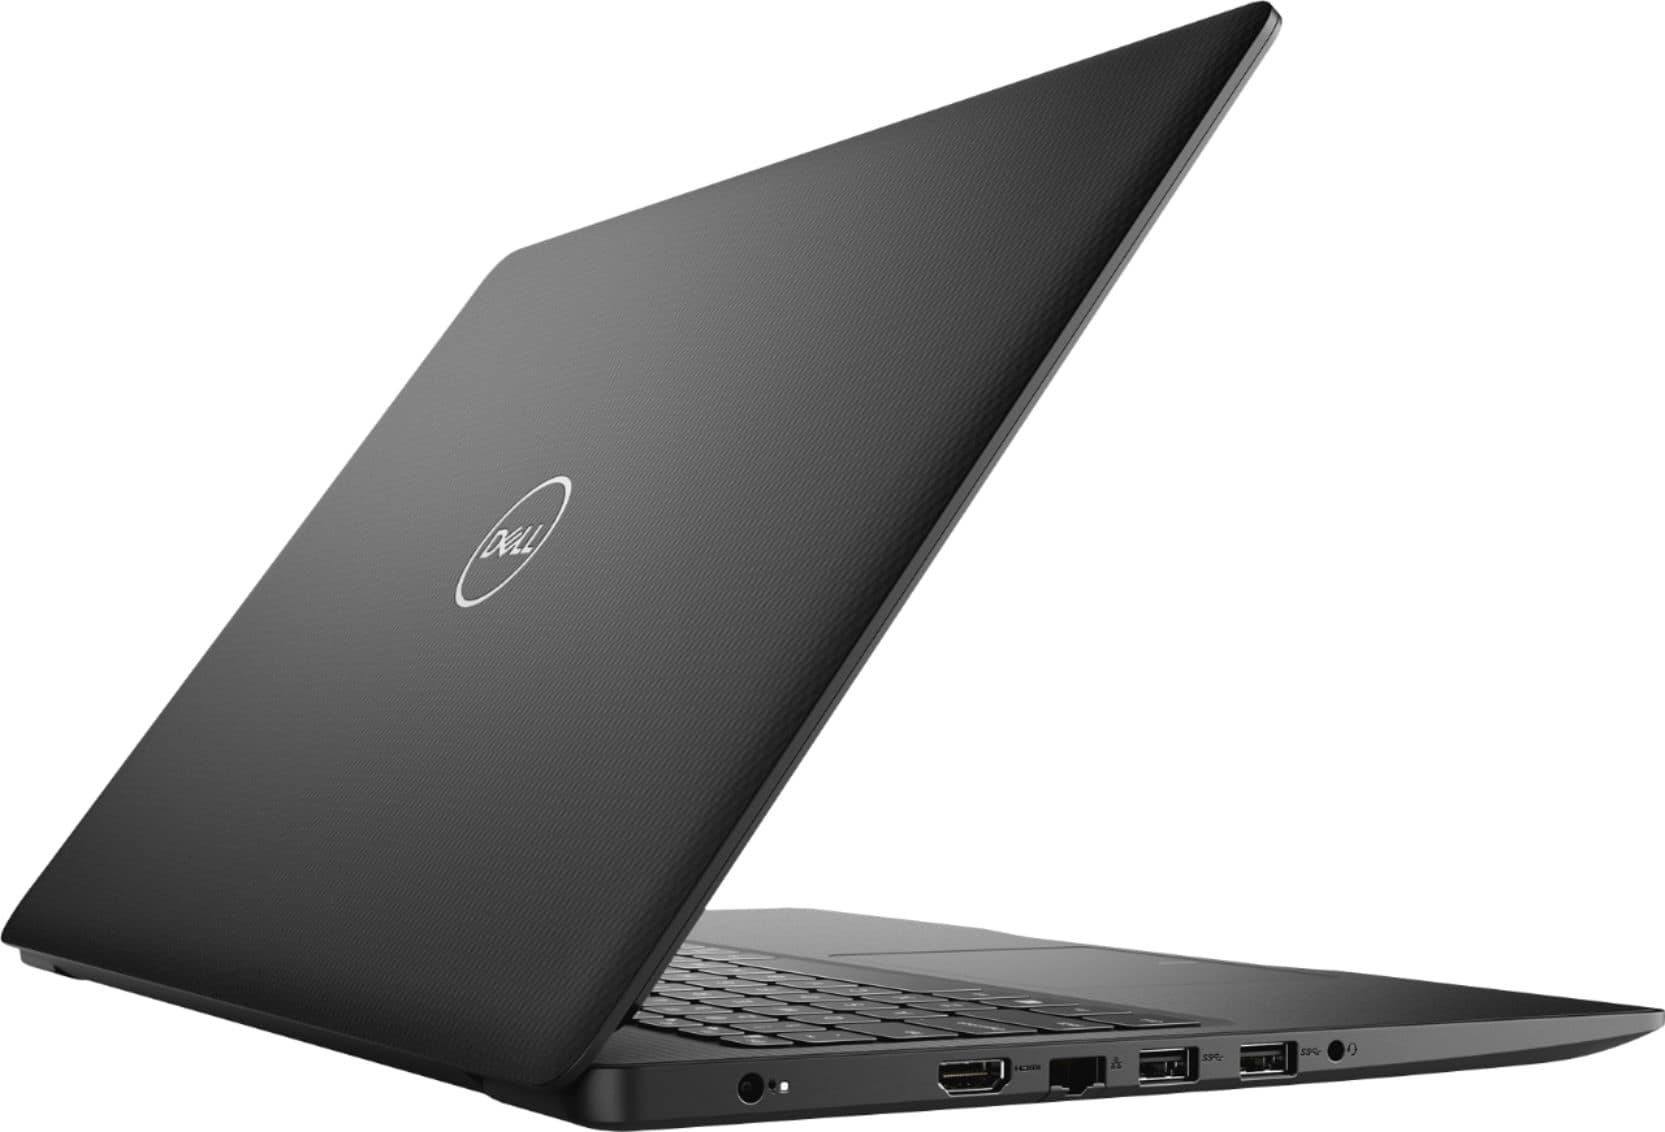 Dell Inspiron 15.6in Touch-Screen Laptop Intel Core i5 8GB Memory 256GB Solid State Drive Black BBY-W1J46FX - Best Buy $350